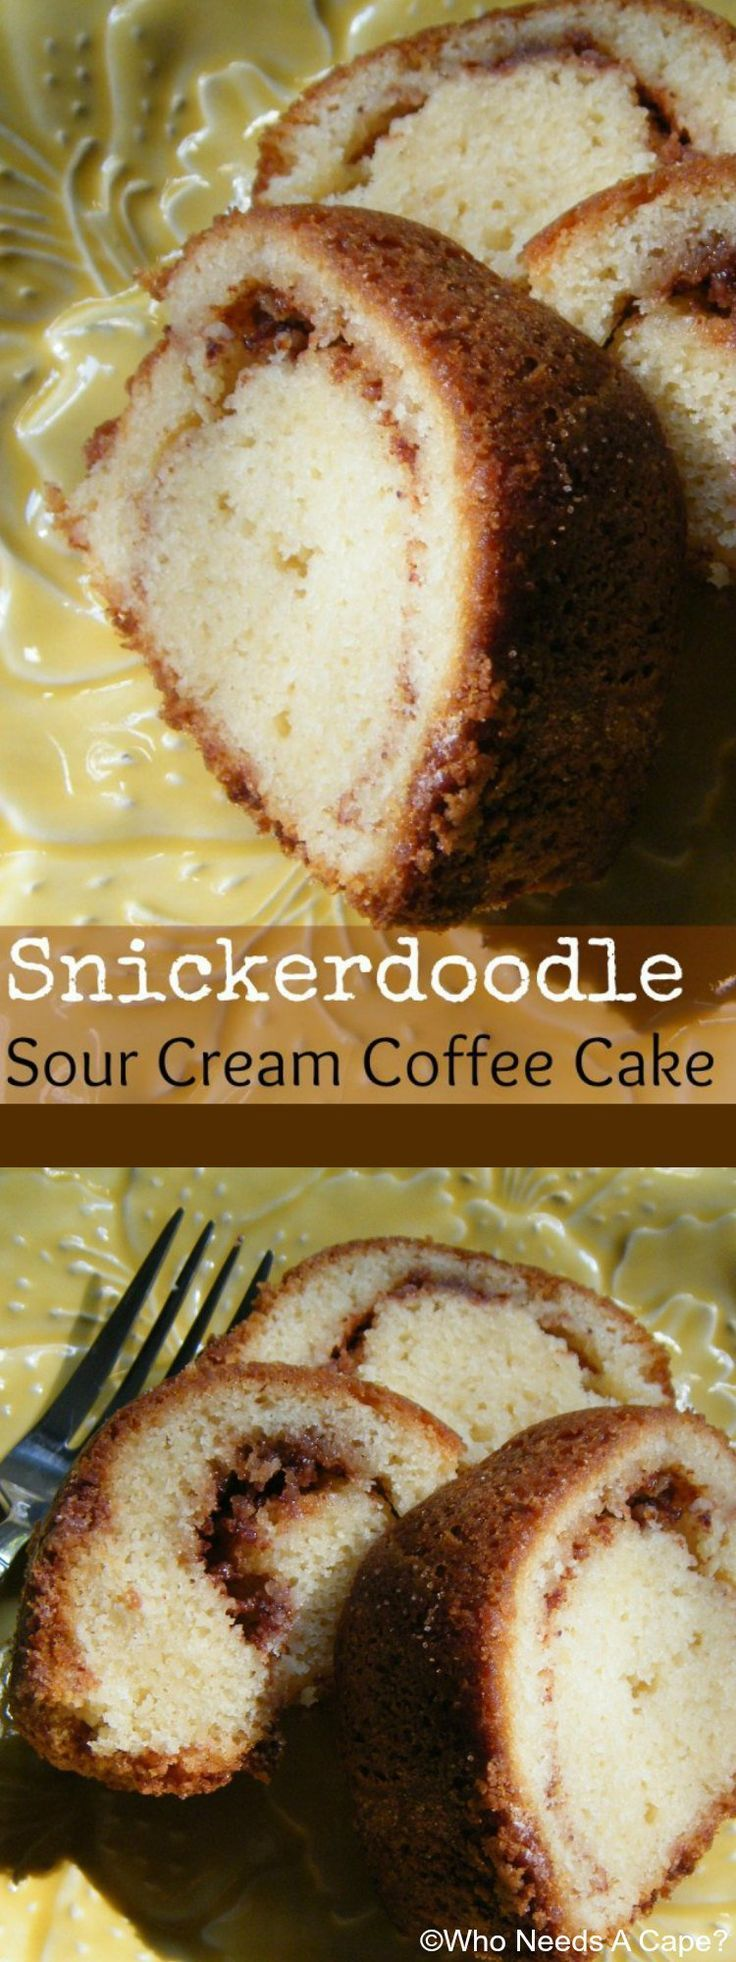 Sour cream coffee cake the frugal chef - Get The Coffee Pot Started Because You Must Have A Cup With This Scrumptious Snickerdoodle Sour